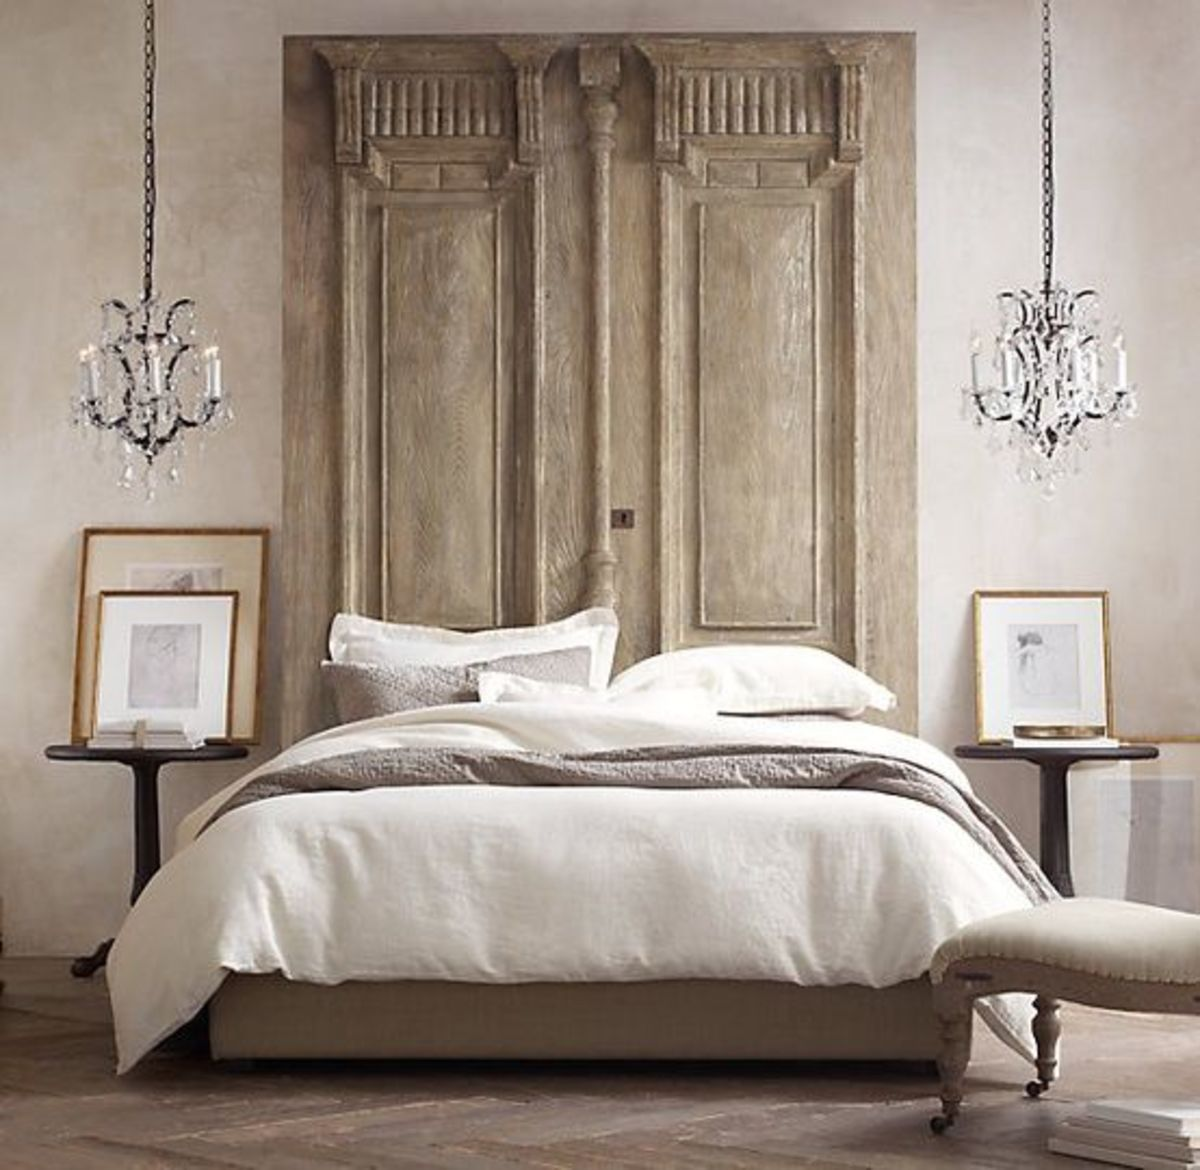 Home Bunch interior design French doors for the headboard ideas